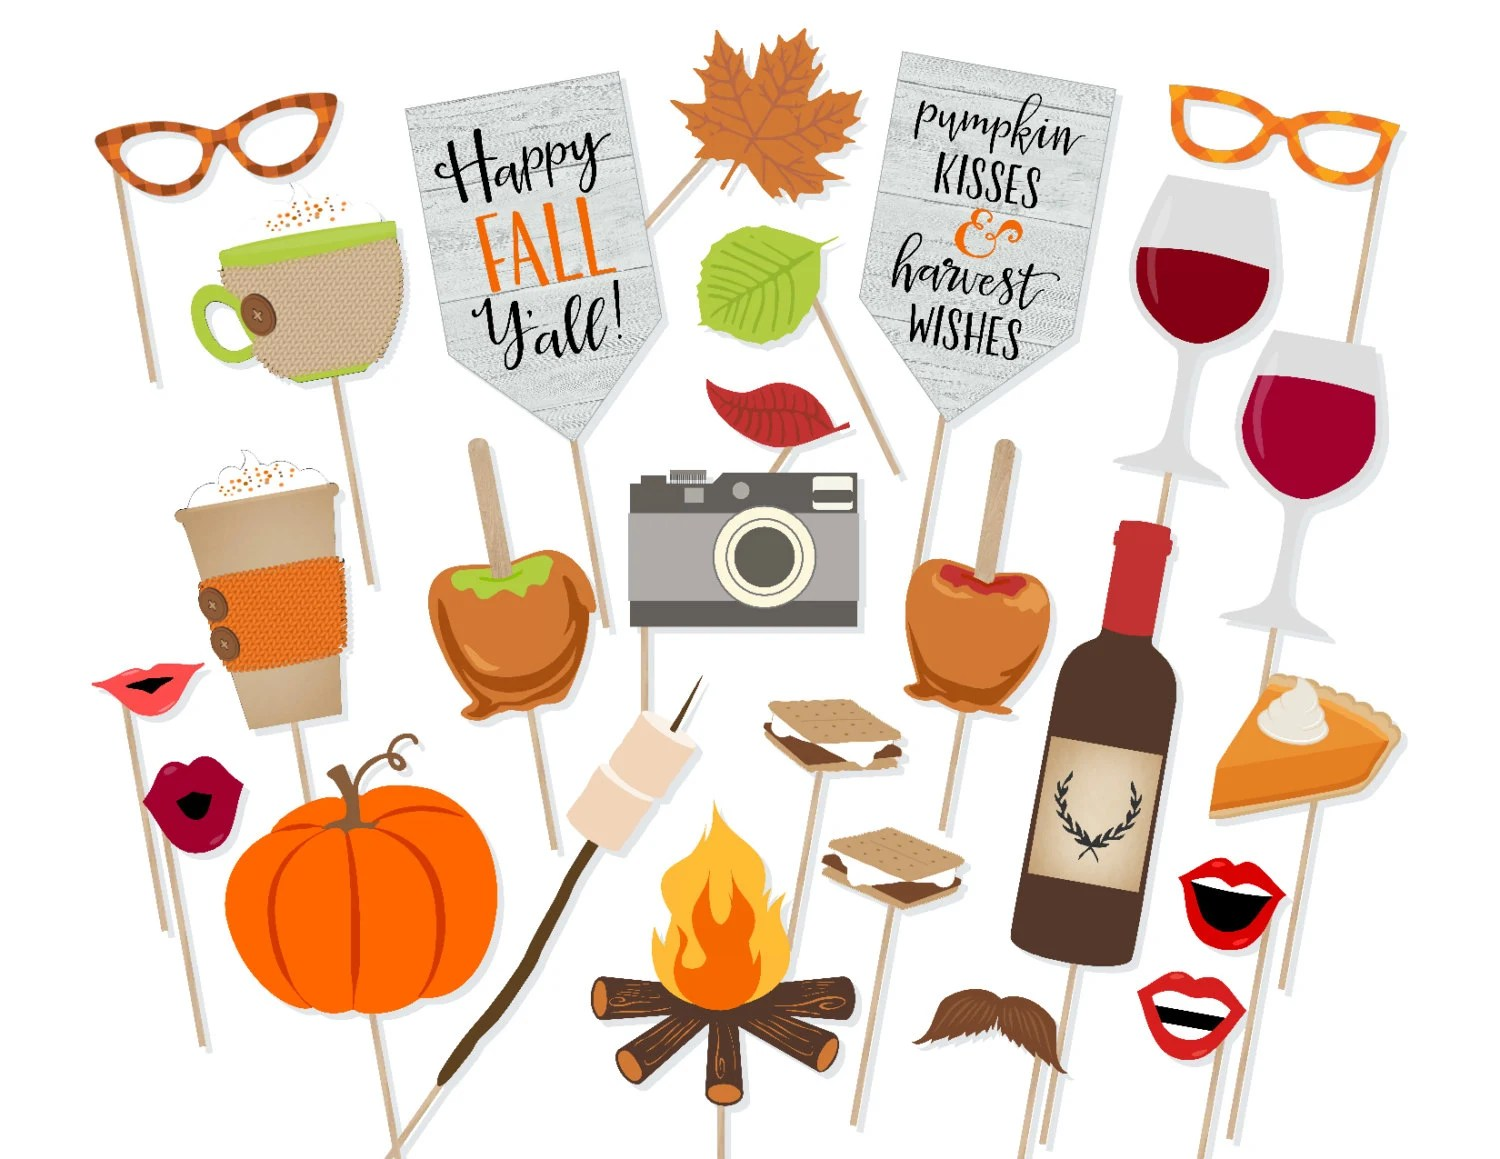 Printable Happy Fall Y All Photo Booth Props Instant